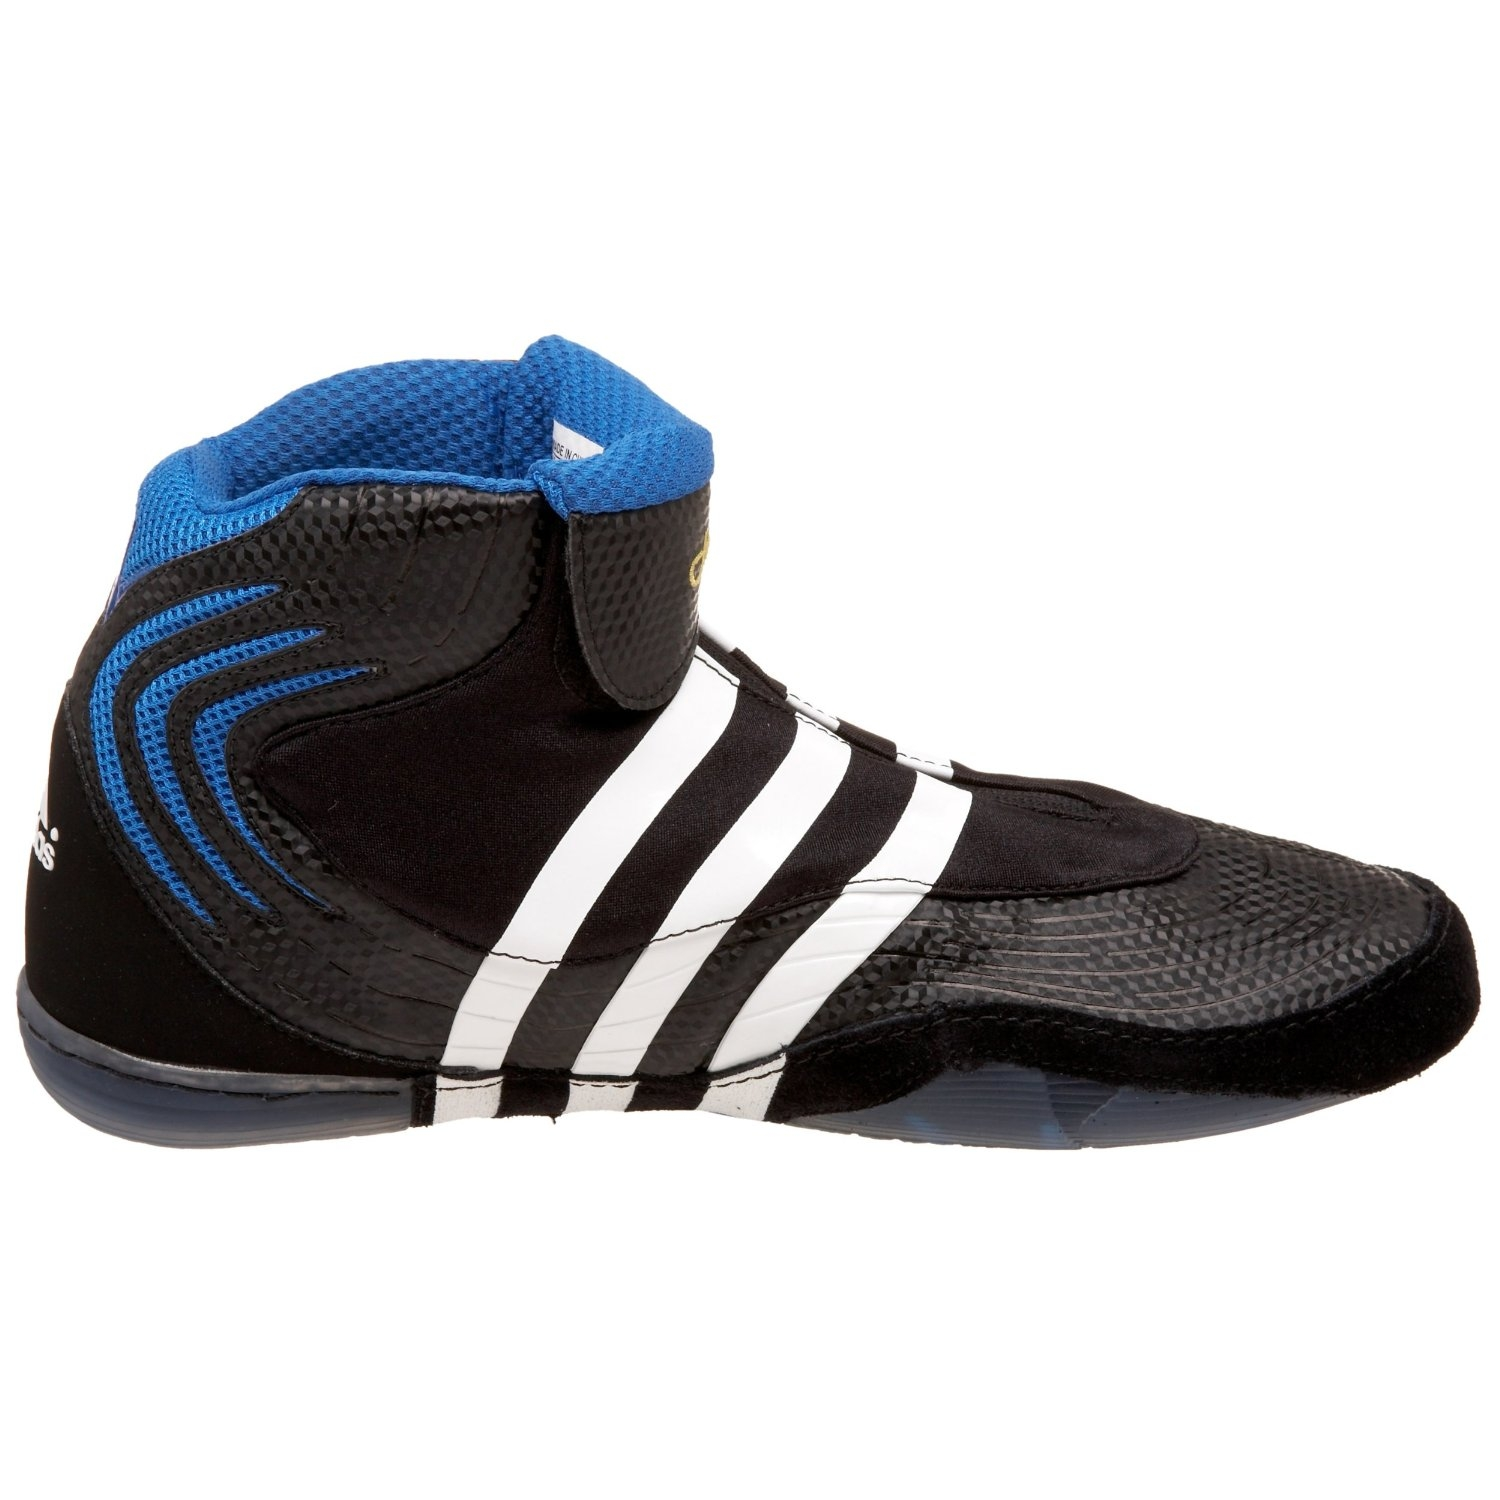 Adidas Adistrike Wrestling Shoes - $69.95